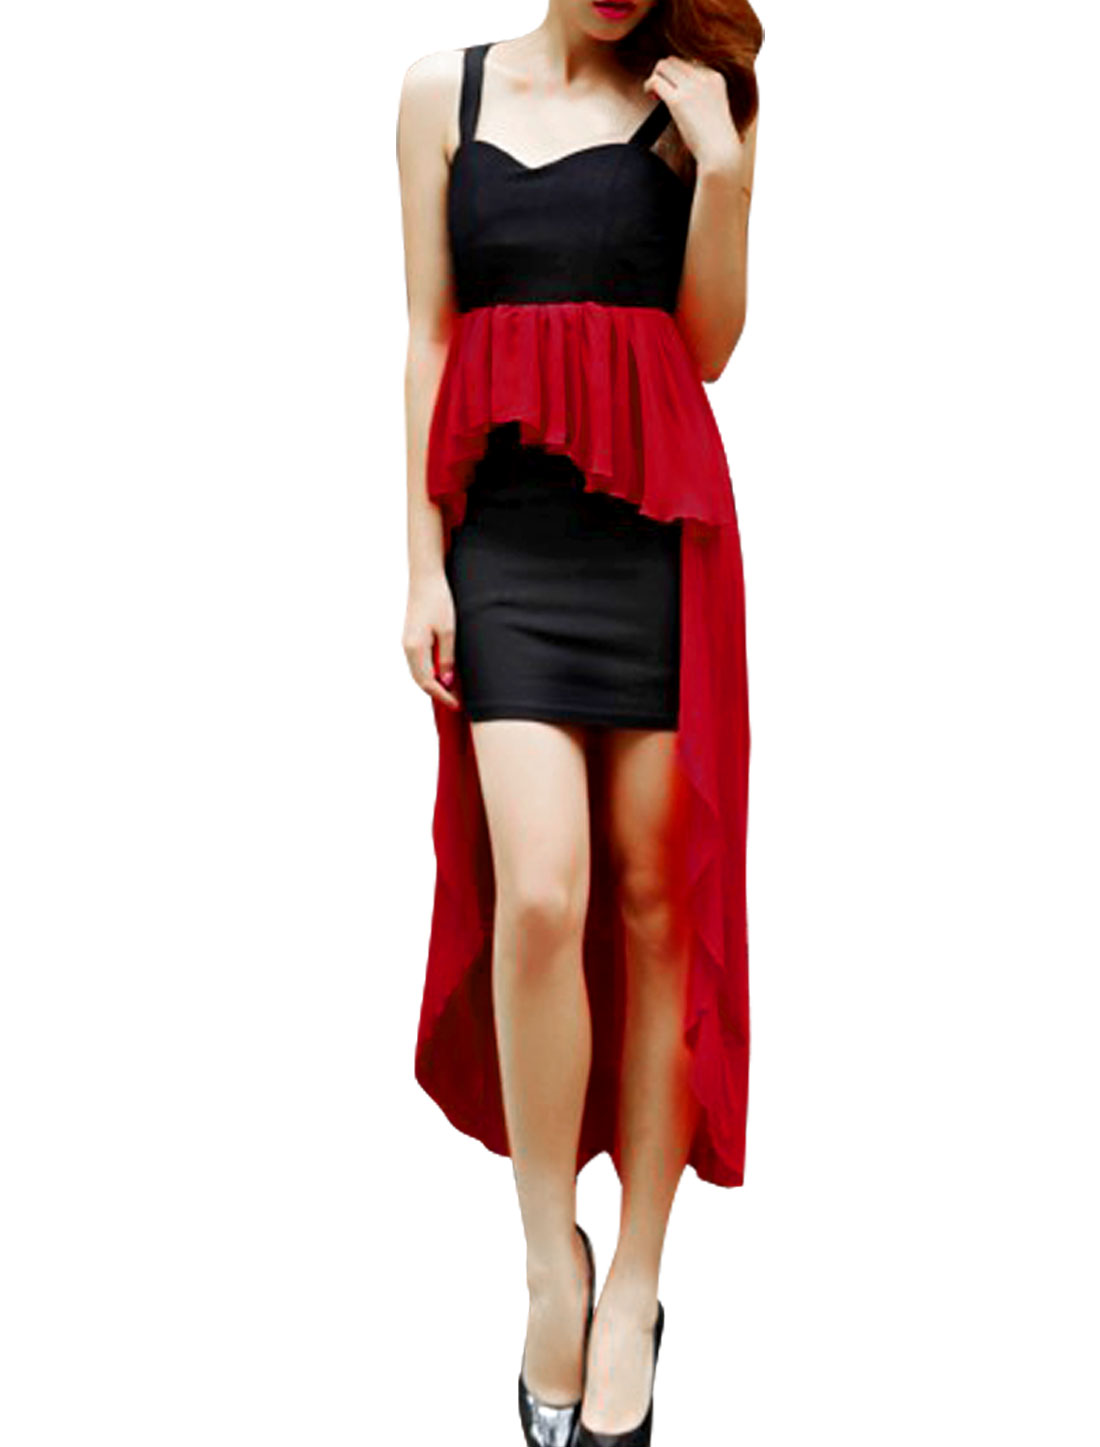 Women Crossover Straps Low High Dress Red Black XS